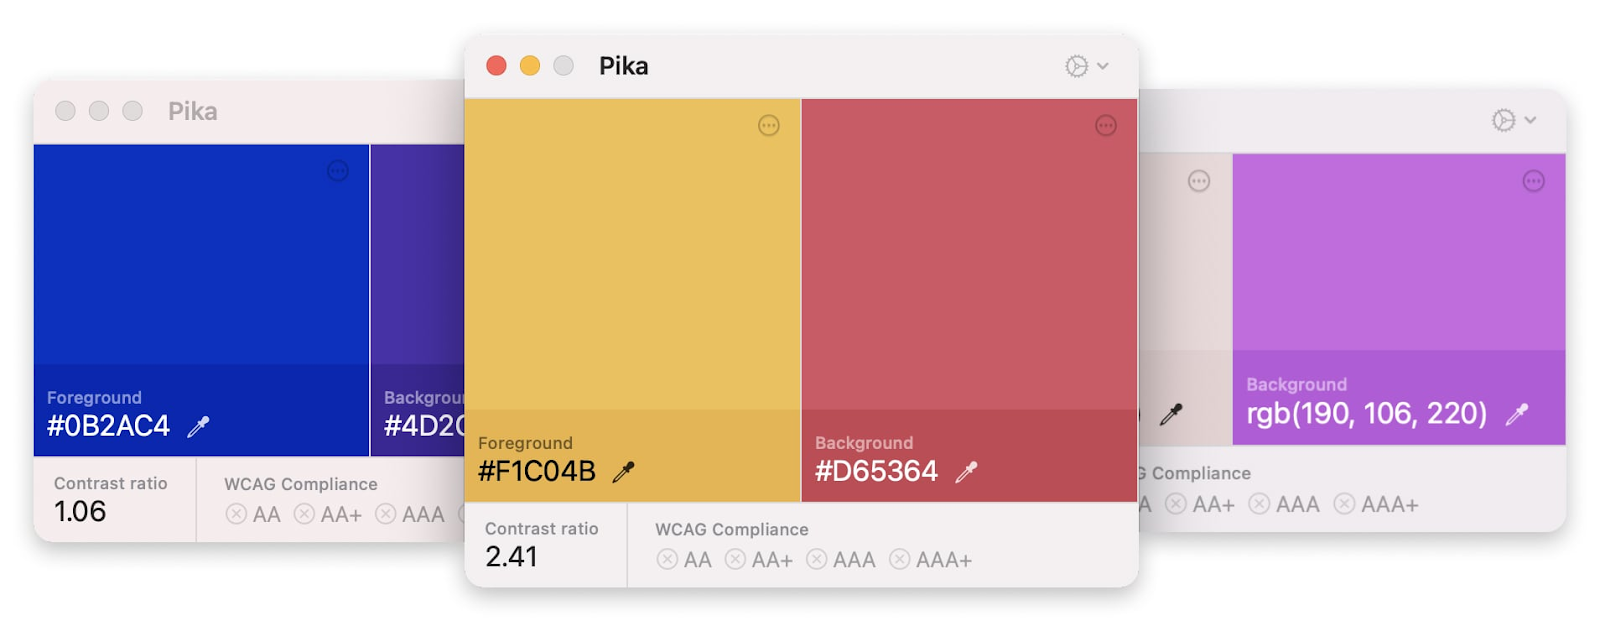 various Pika screens with 2 color combos (blue and purple, yellow and red, white and purple) with hex color code, contrast ratio, and WCAG compliance.